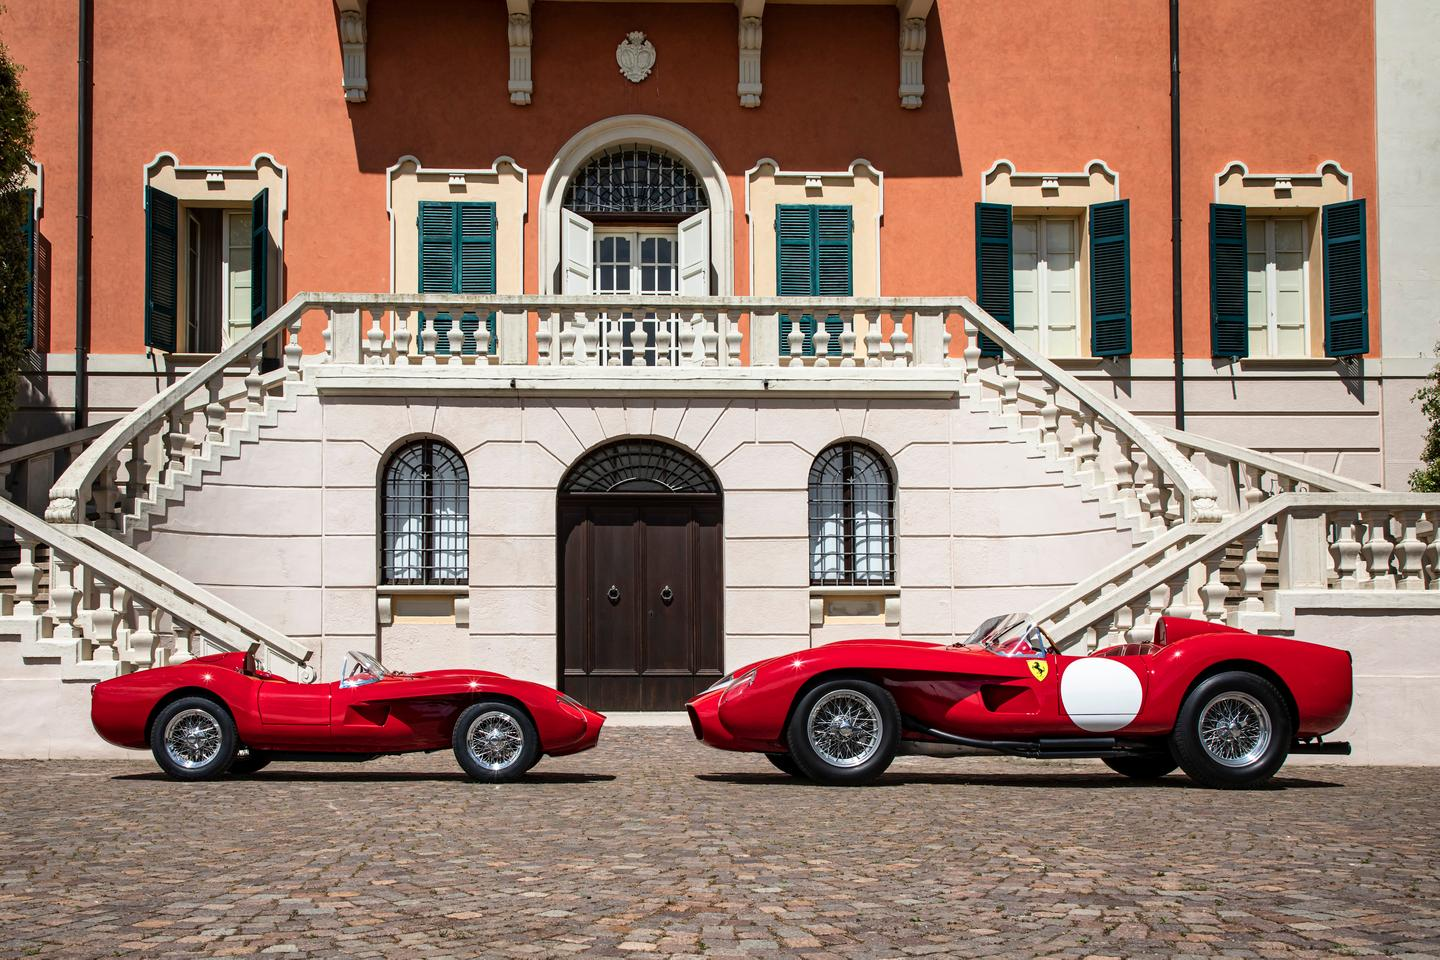 Ferrari's Testa Rossa J is a 75% scale replica of one of the most coveted vintage cars on the planet. Just 34 full-scale Ferrari 250 Testa Rossas were built, they won the 24 Hours of Le Mans three times, making the car not just one of the most beautiful in the world, but far-and-away the fastest road car in the world at the time.